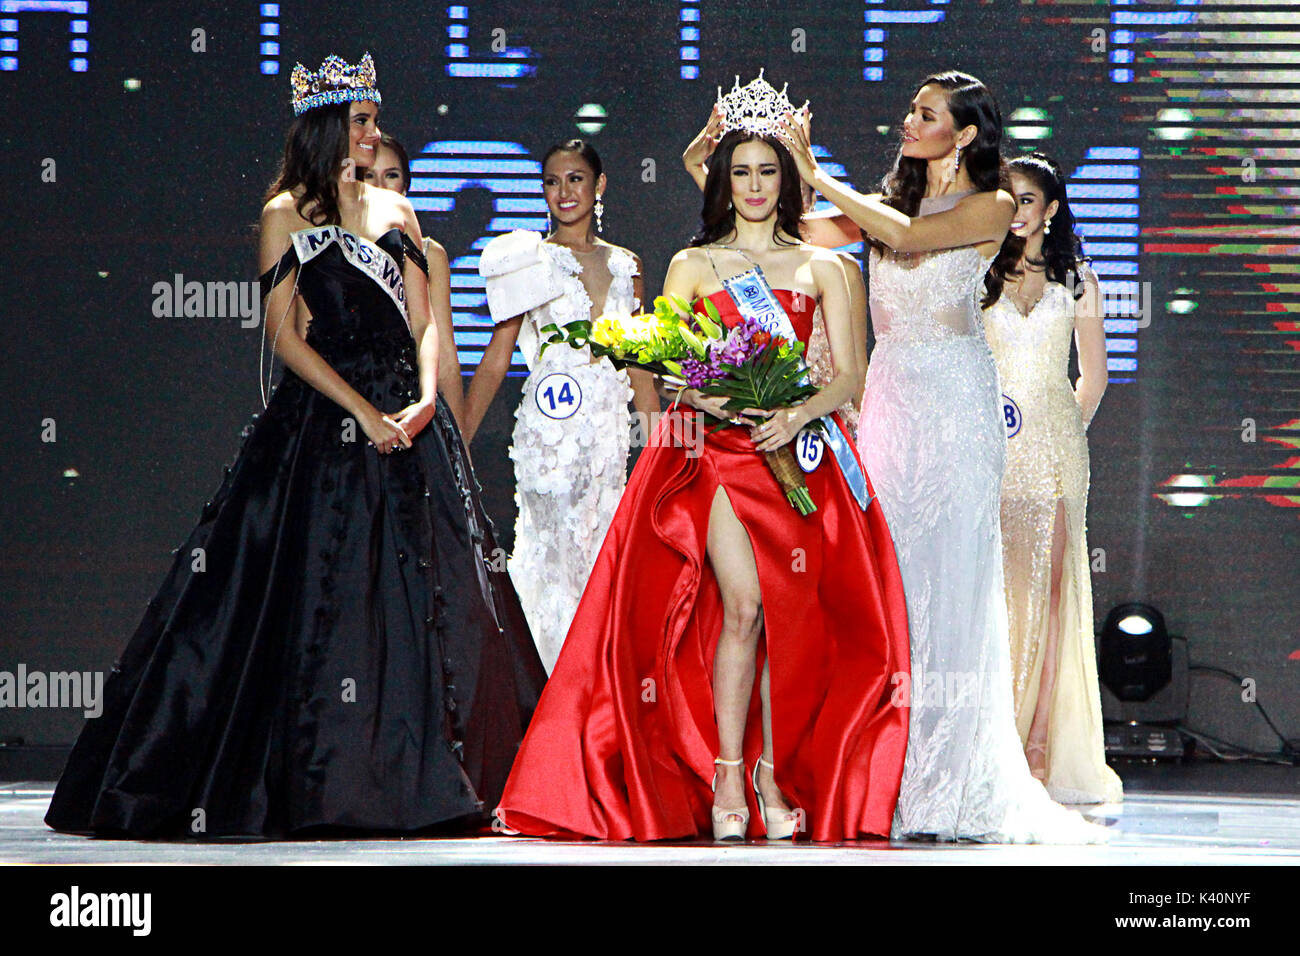 Miss Asia Pacific Stock Photos Images Catriona Monique Top Handle Bag Grey Philippines 03rd Sep 2017 Sportscaster 15 Laura Lehmann Center